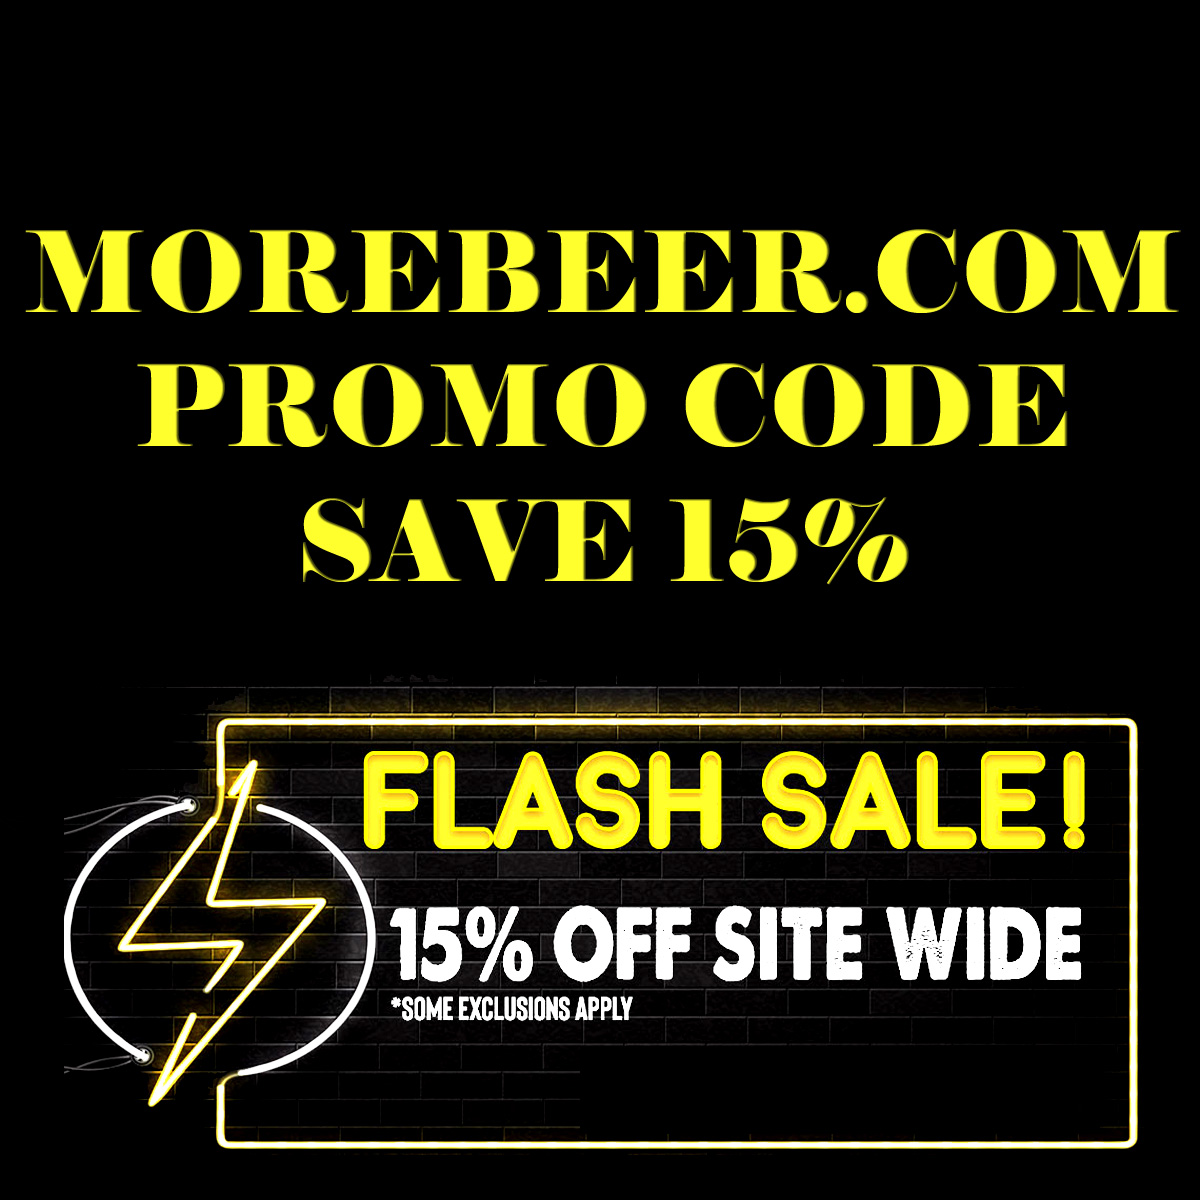 Home Wine Making Coupon Codes for Save an Extra 15% With This MoreBeer.com Promo Code During The More Beer Flash Sale Coupon Code